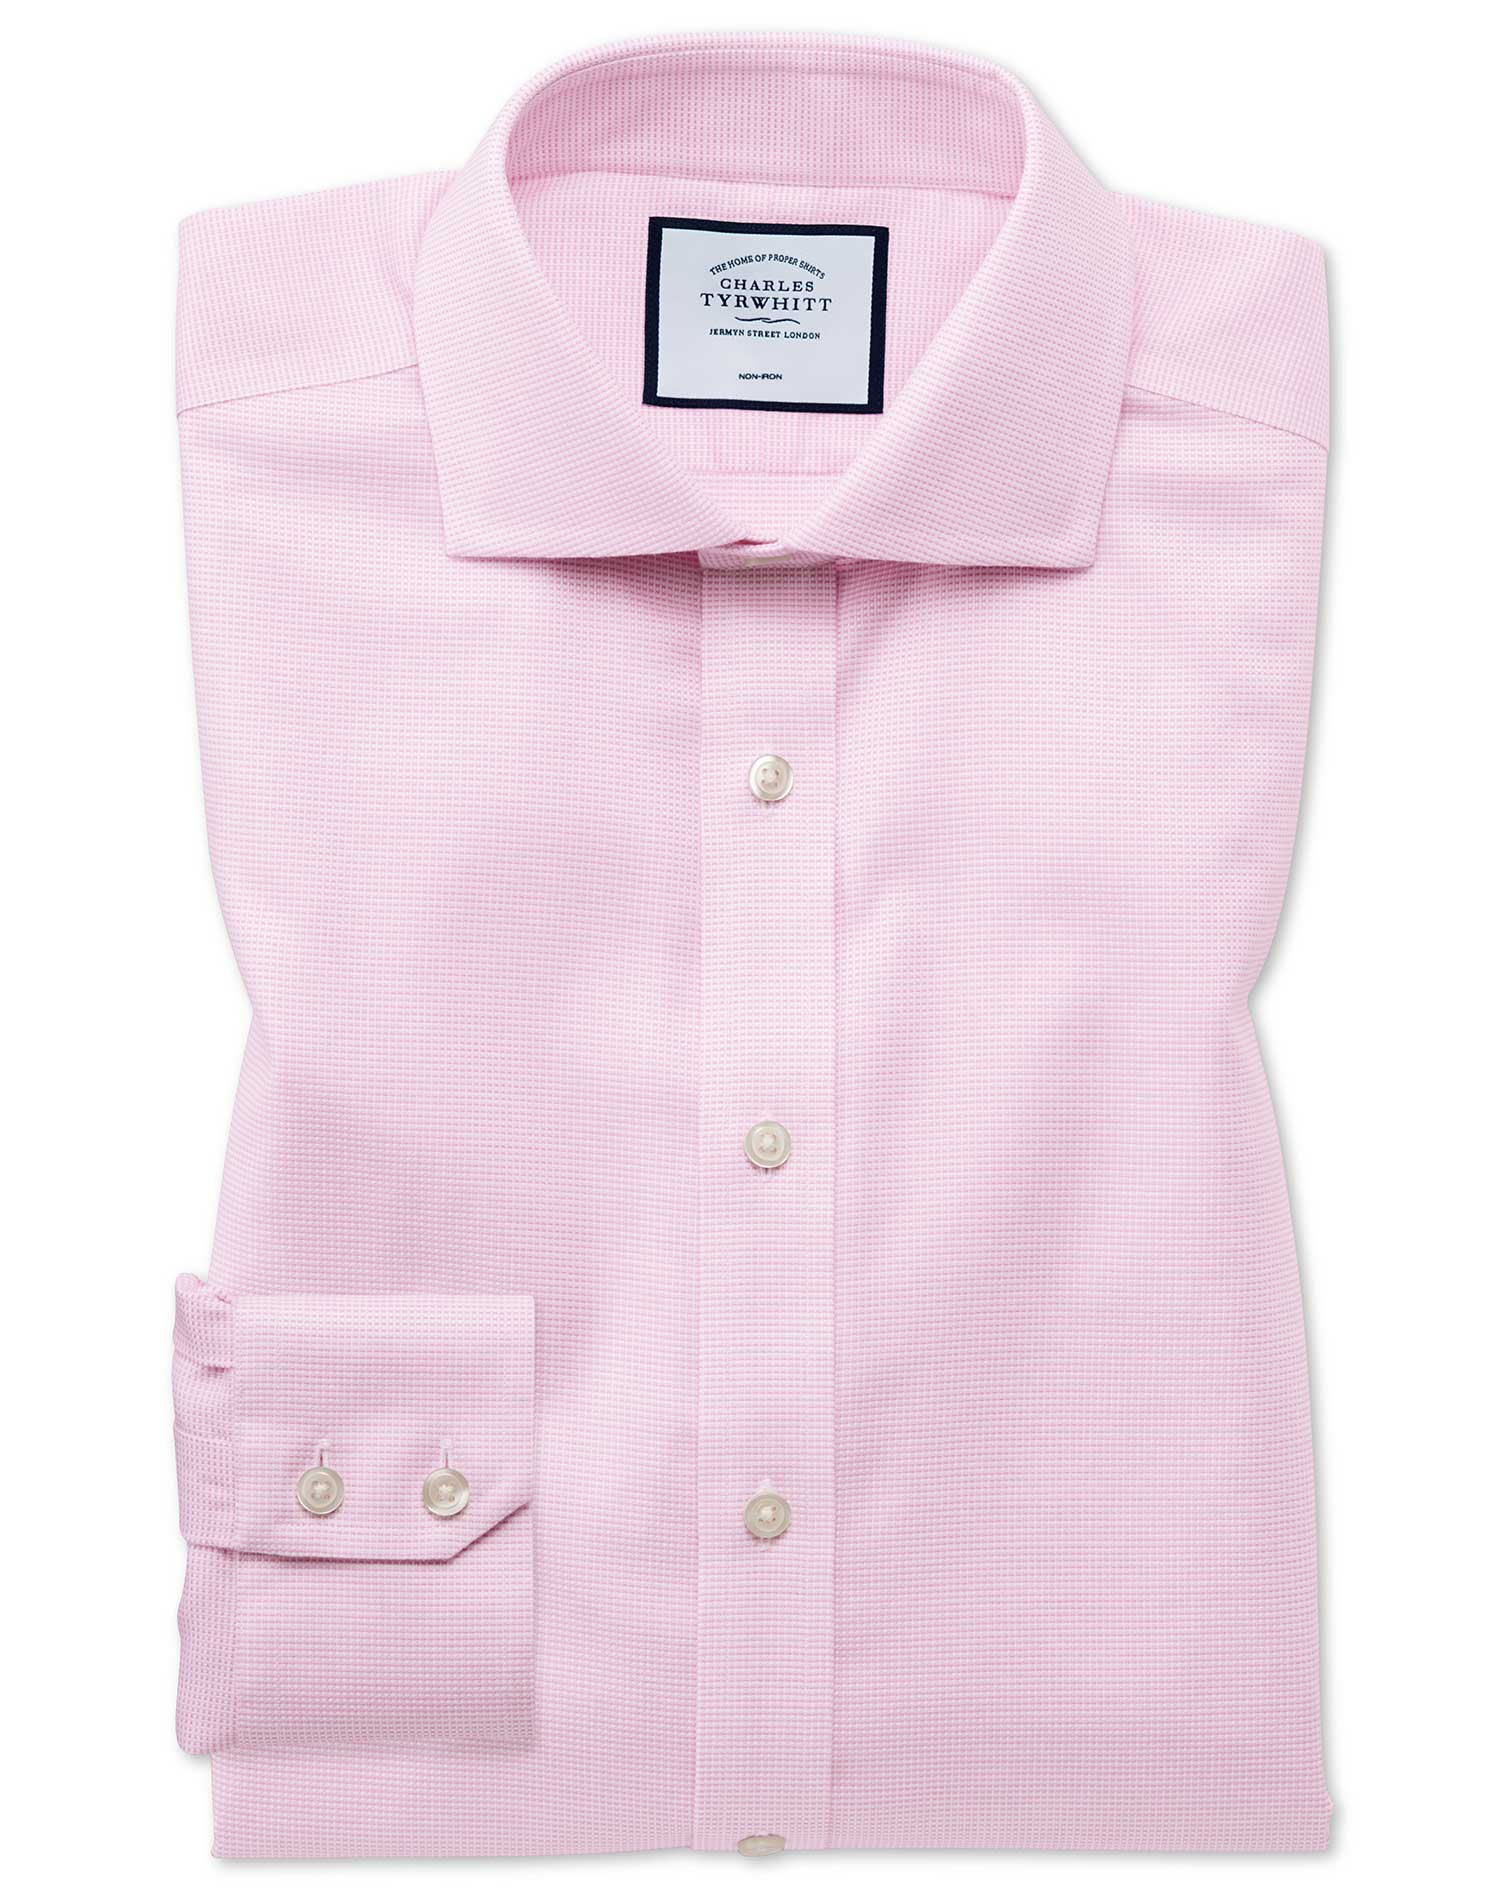 Extra Slim Fit Non-Iron Cotton Stretch Oxford Pink Formal Shirt Single Cuff Size 16.5/36 by Charles